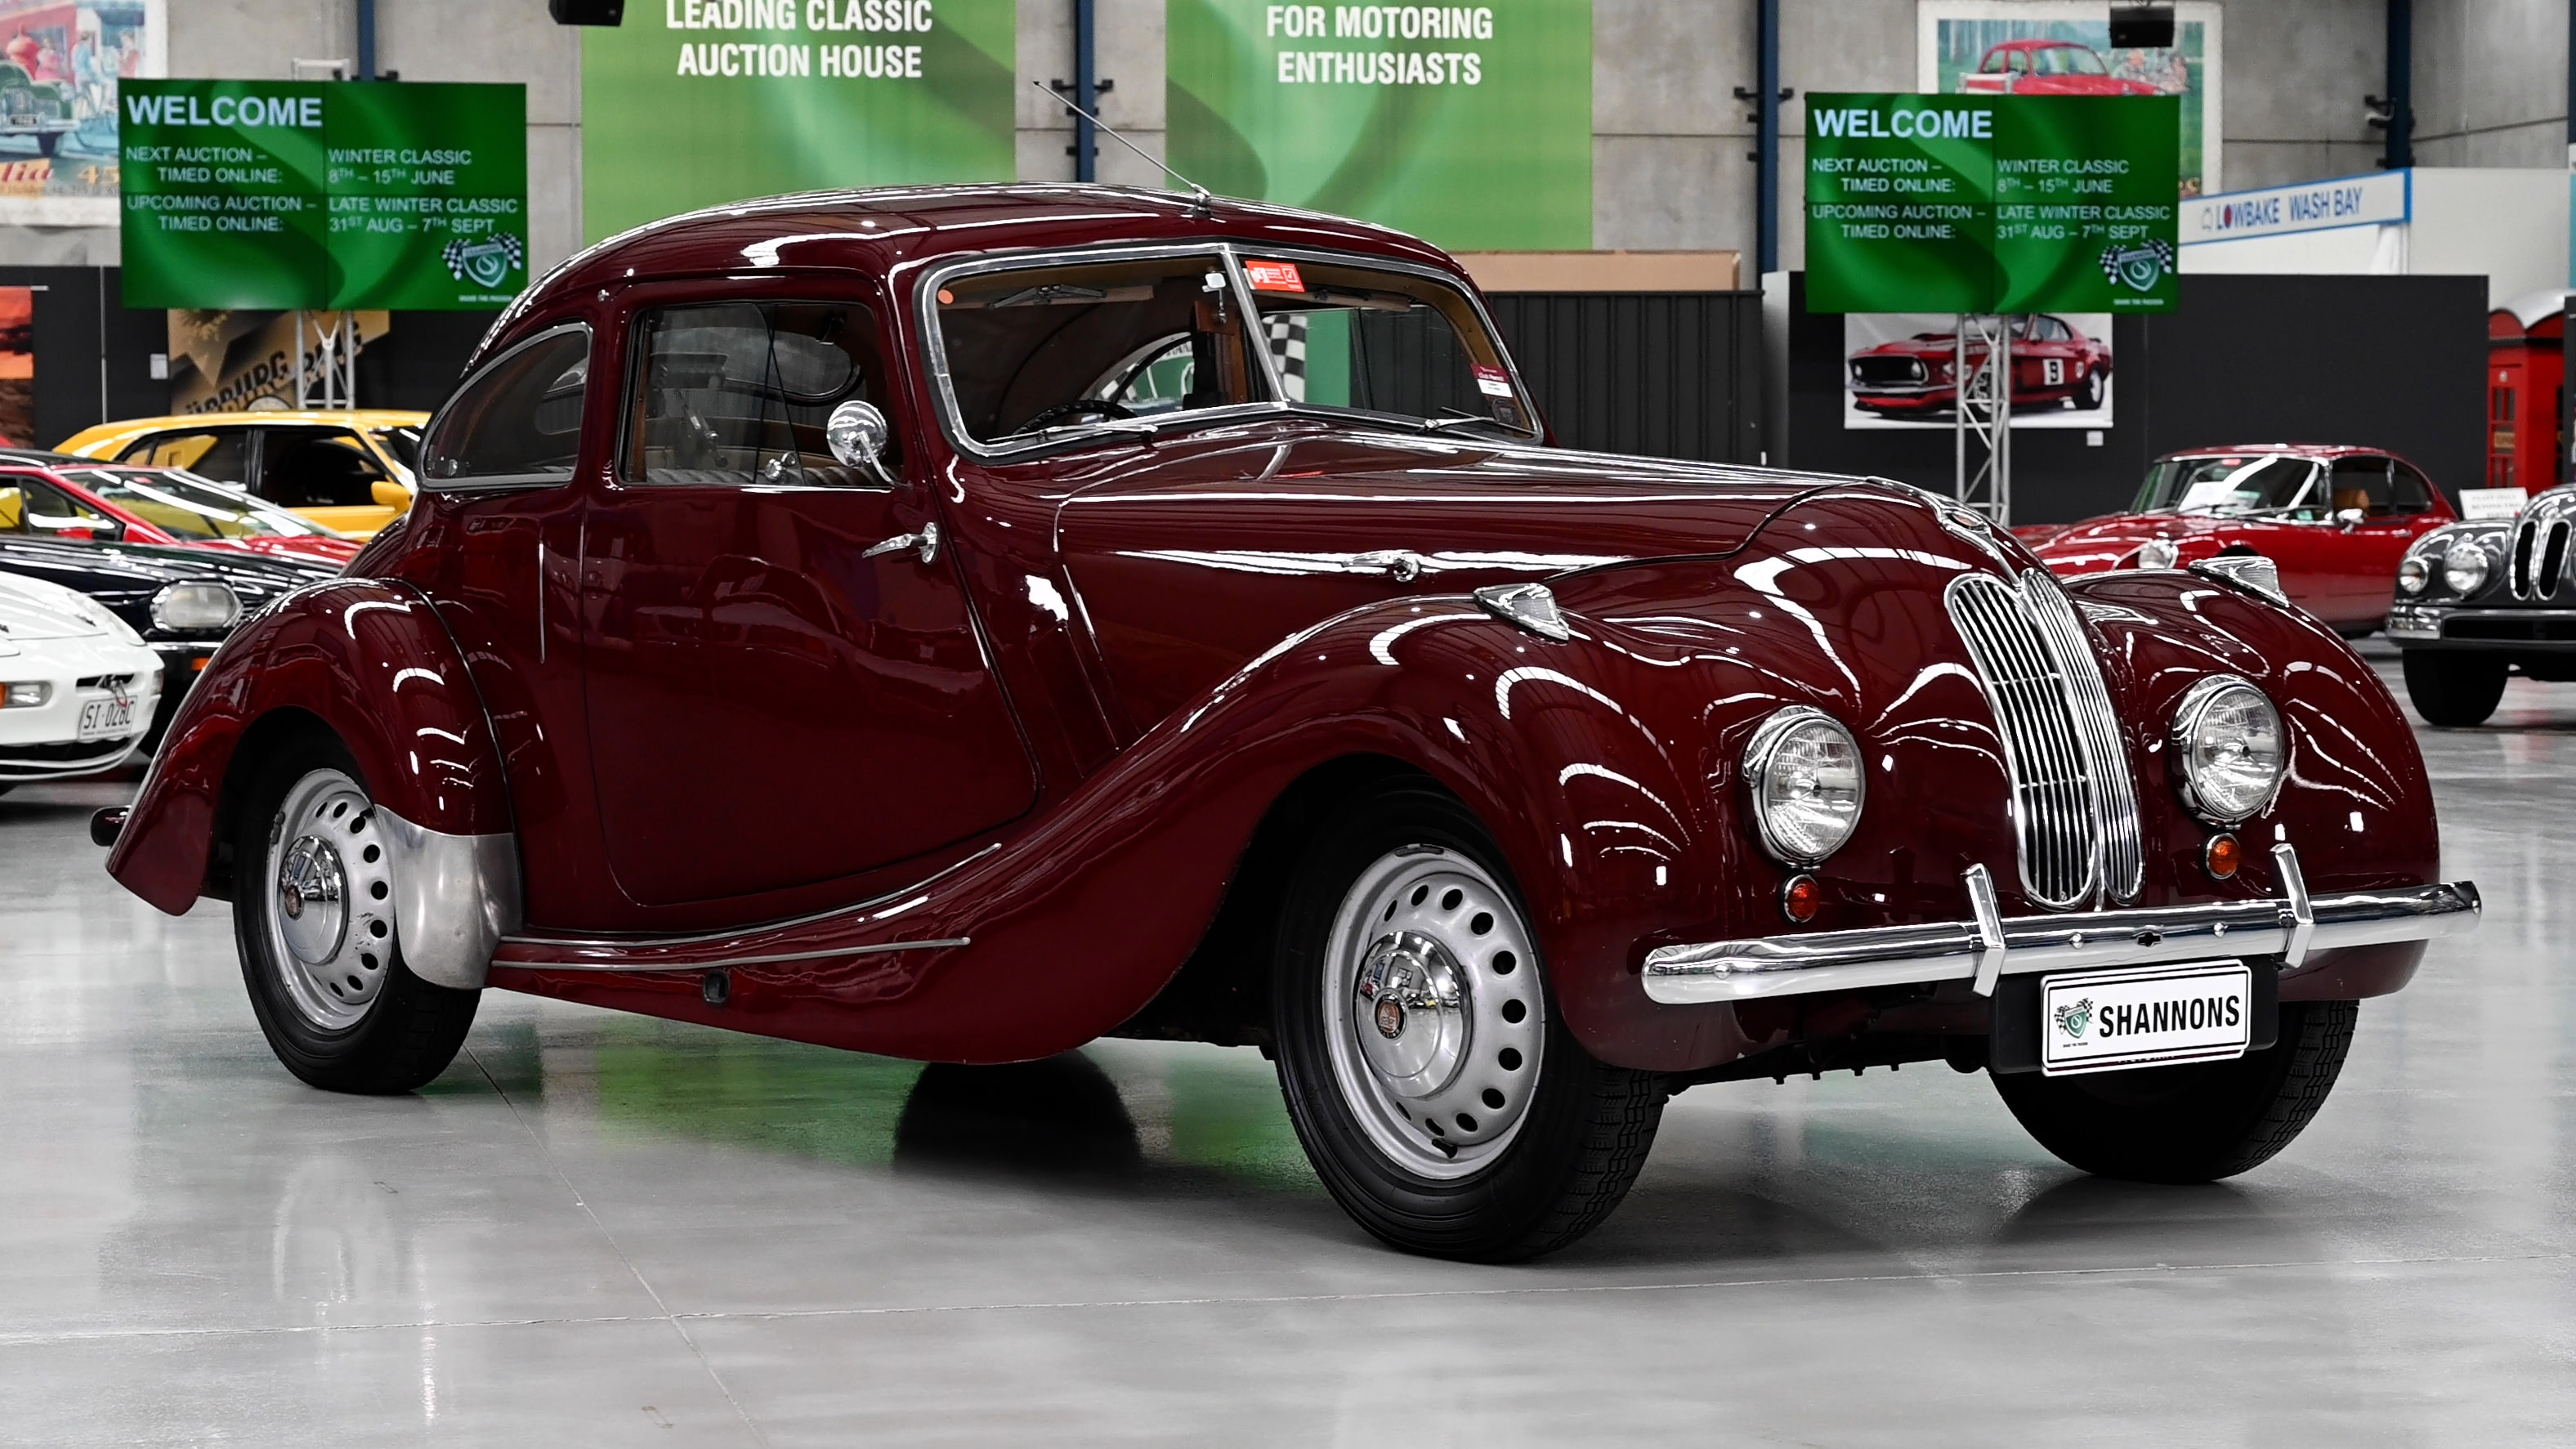 1949 Bristol 400 Saloon - 2021 Shannons Winter Timed Online Auction